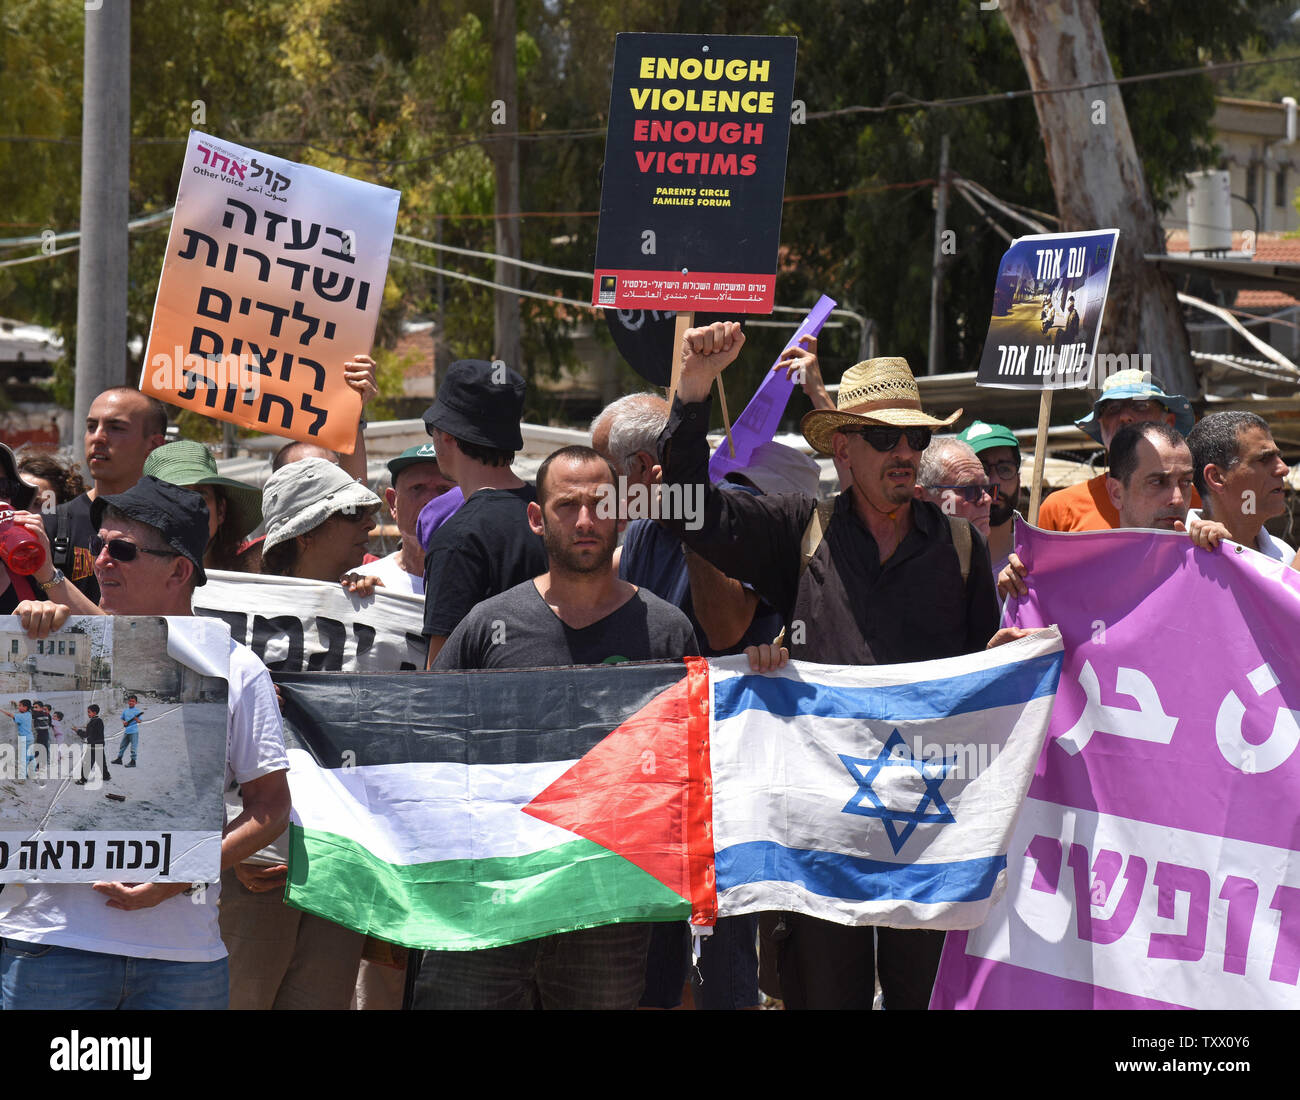 Israeli protesters hold the Israeli and Palestinian national flags and signs calling on the government to stop the bloodshed of Palestinians on the Gaza border at a demonstration at  Yad Mordechai, Israel, near the Gaza Strip, May 18, 2018.  More than a hundred Palestinians have been killed by the Israeli army in protests along the Israel-Gaza border in recent weeks.   Photo by Debbie Hill/UPI - Stock Image